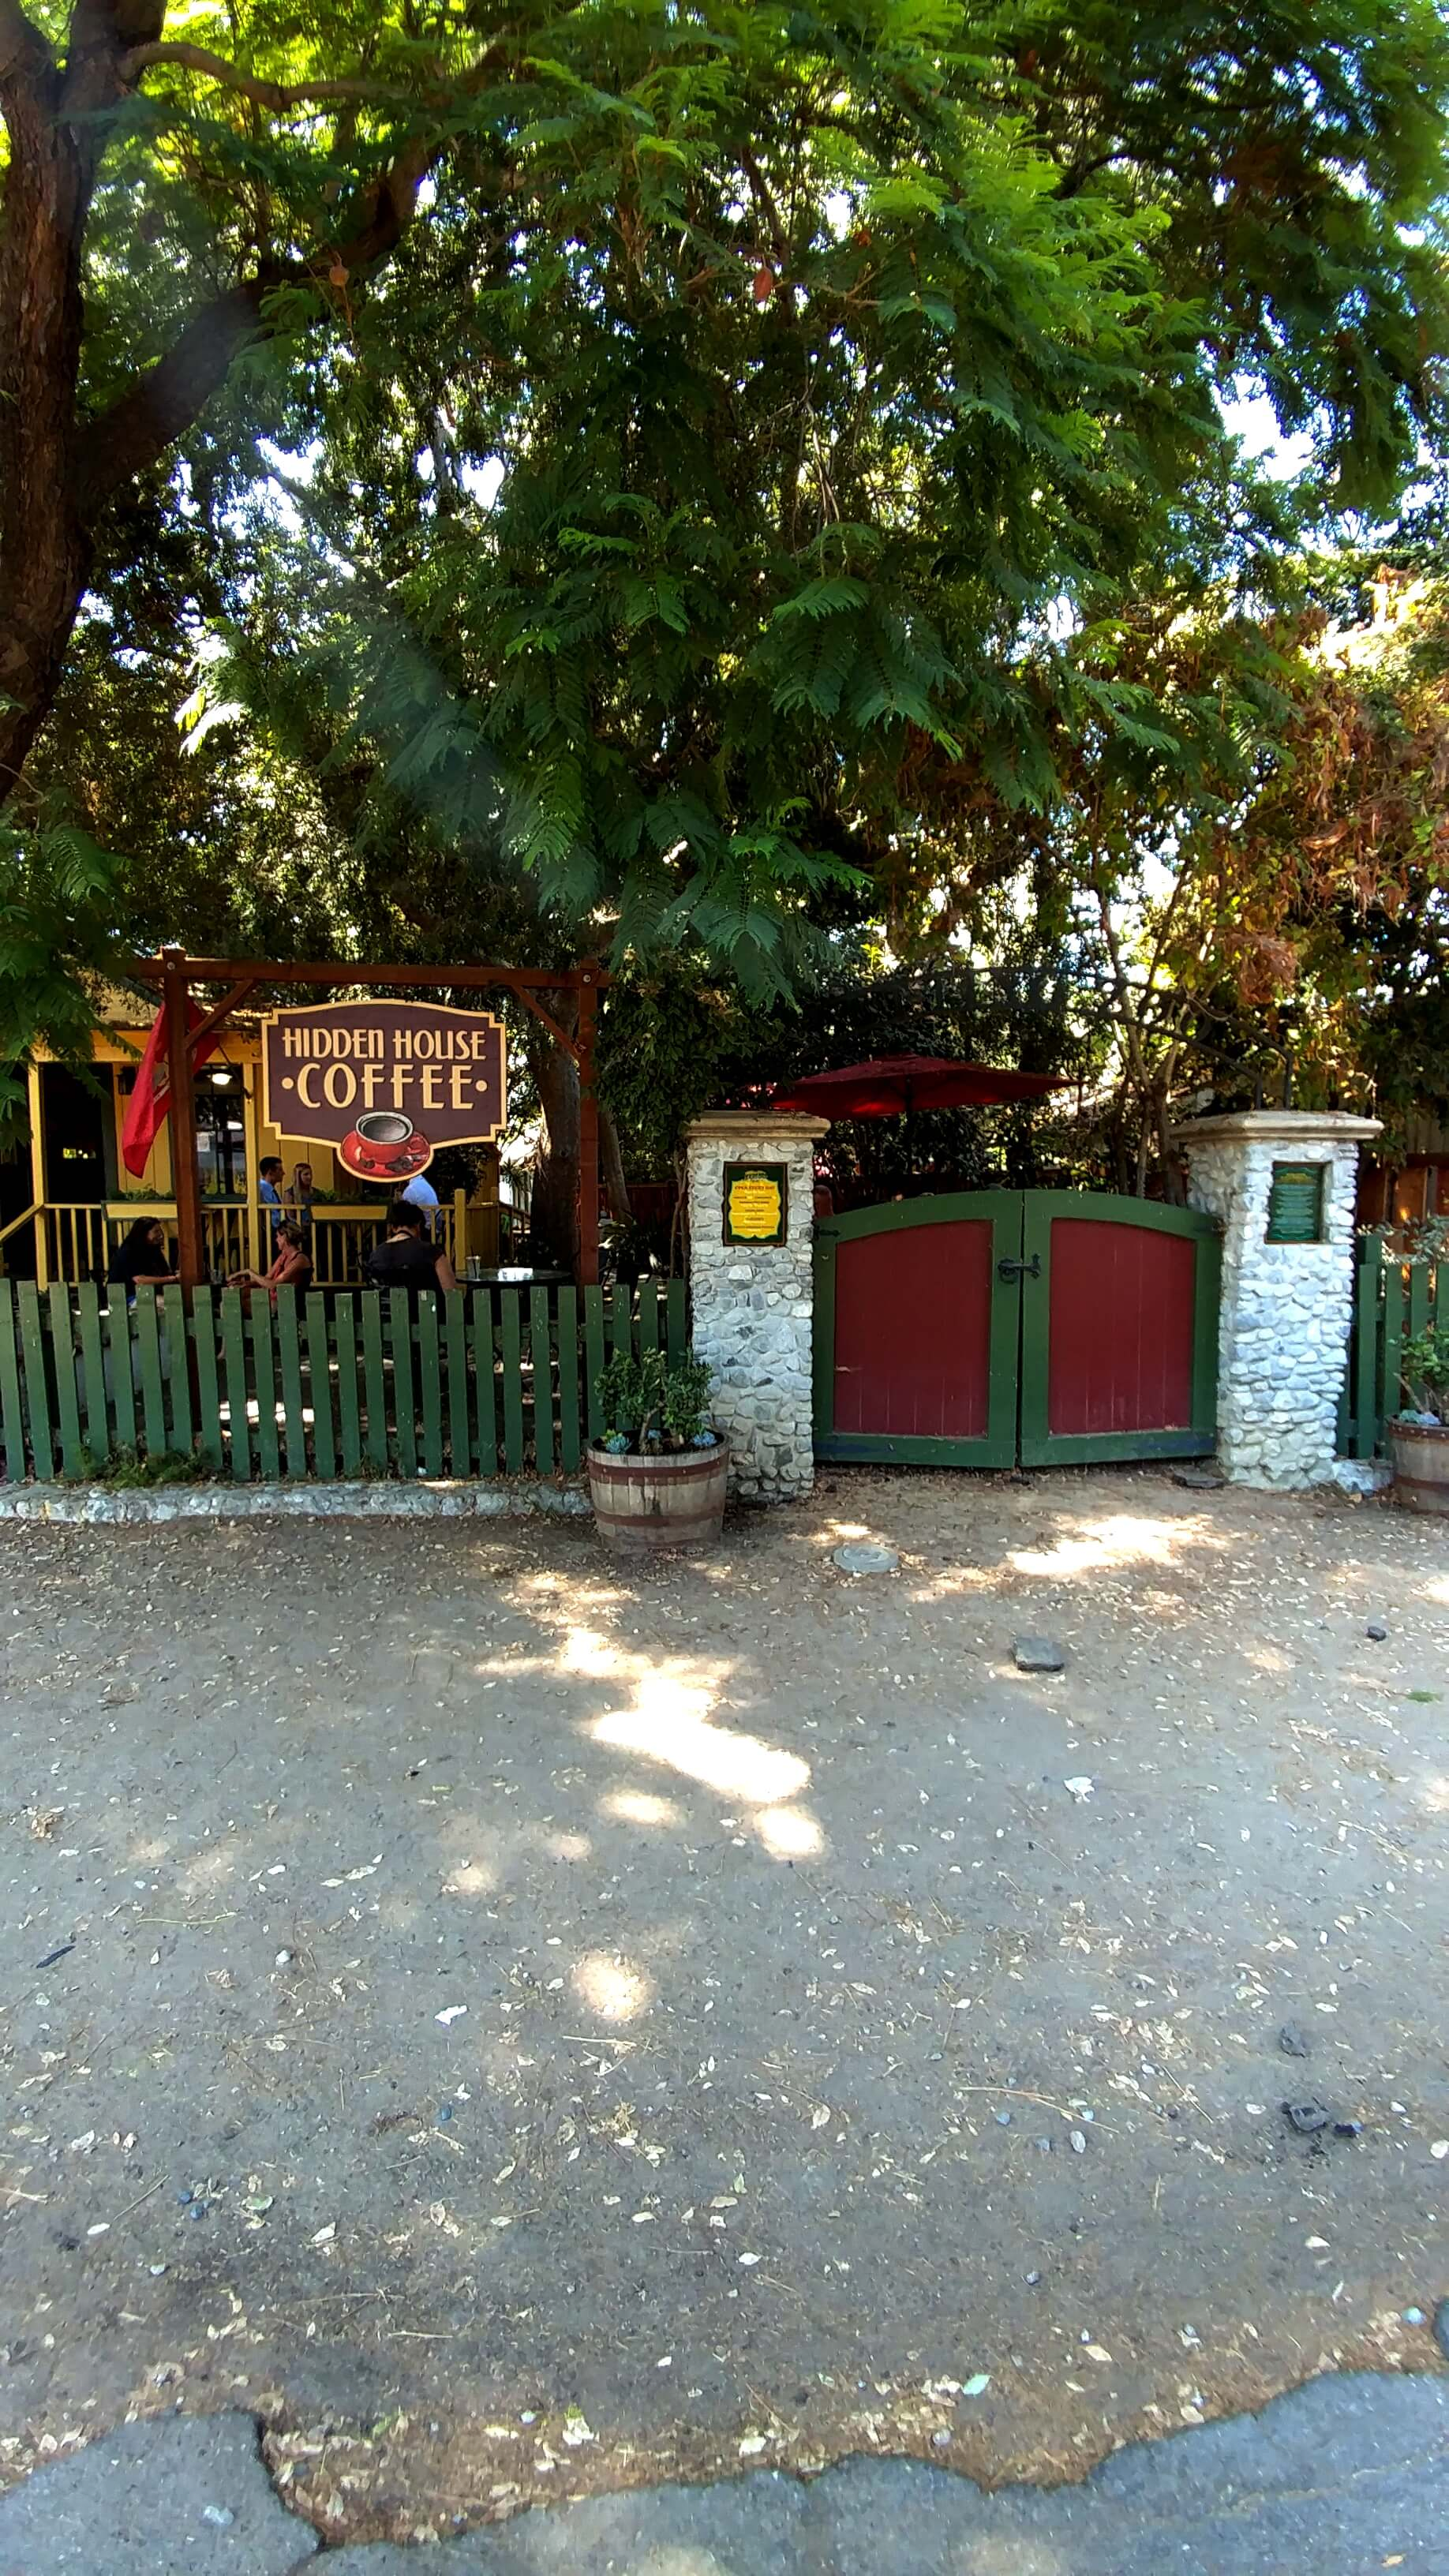 Hidden house Coffee Shop, Los Rios Street, San Juan Capistrano